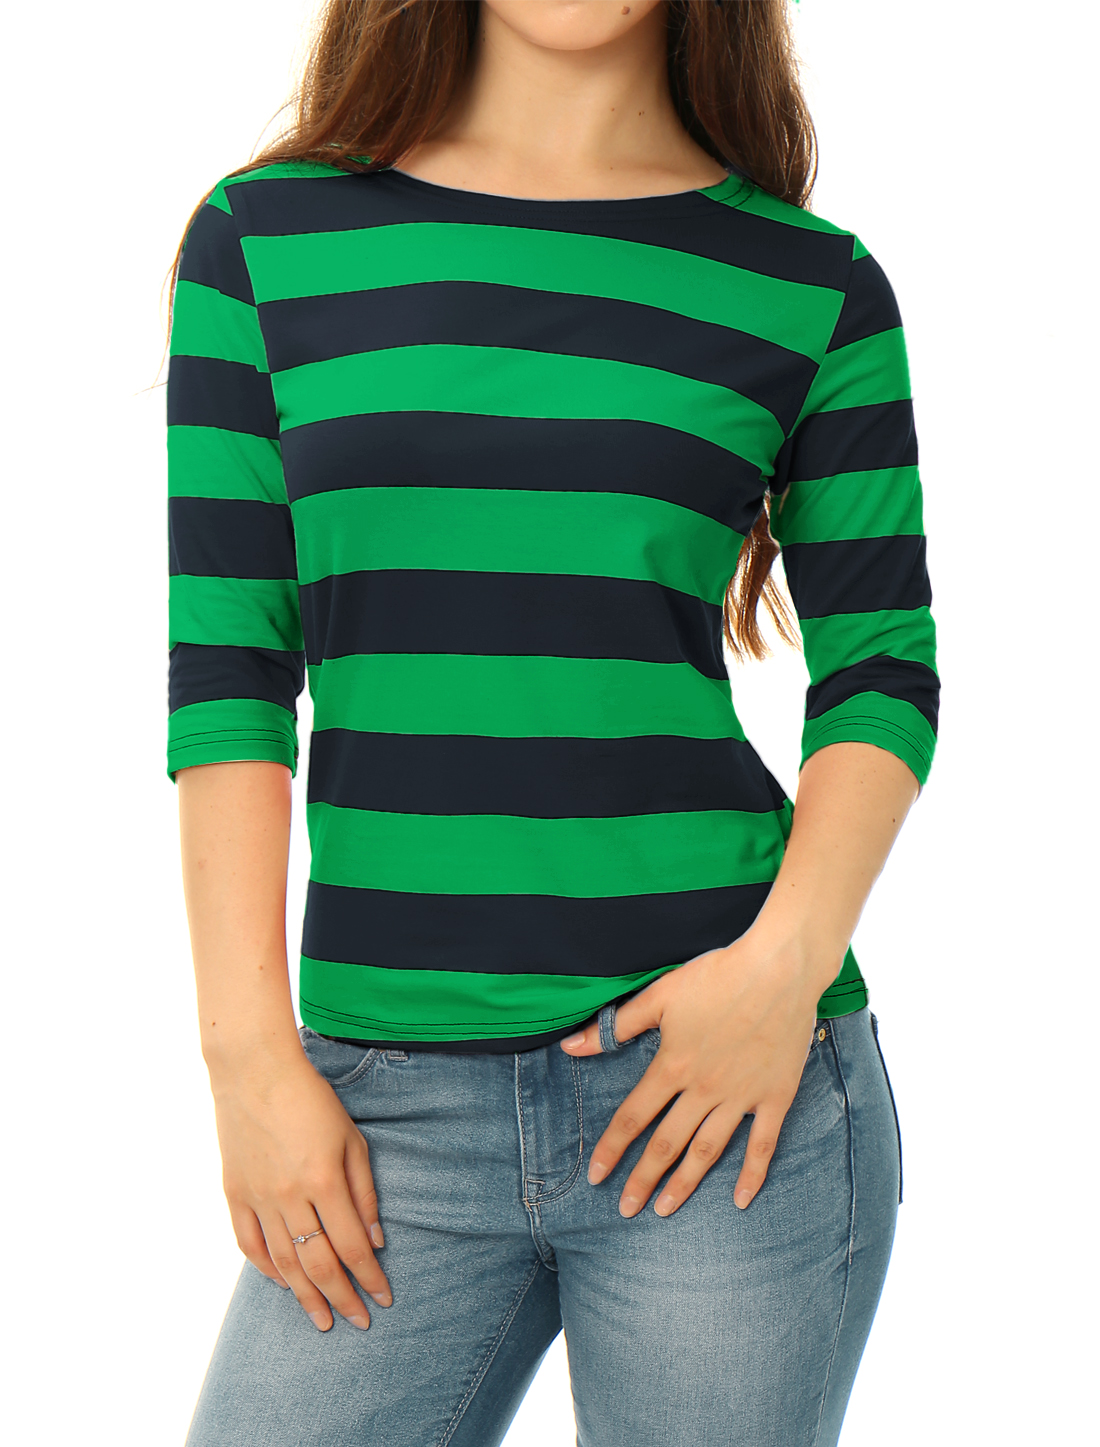 Allegra K Women Half Sleeves Boat Neck Slim Fit Stripe Tee Dark Green S